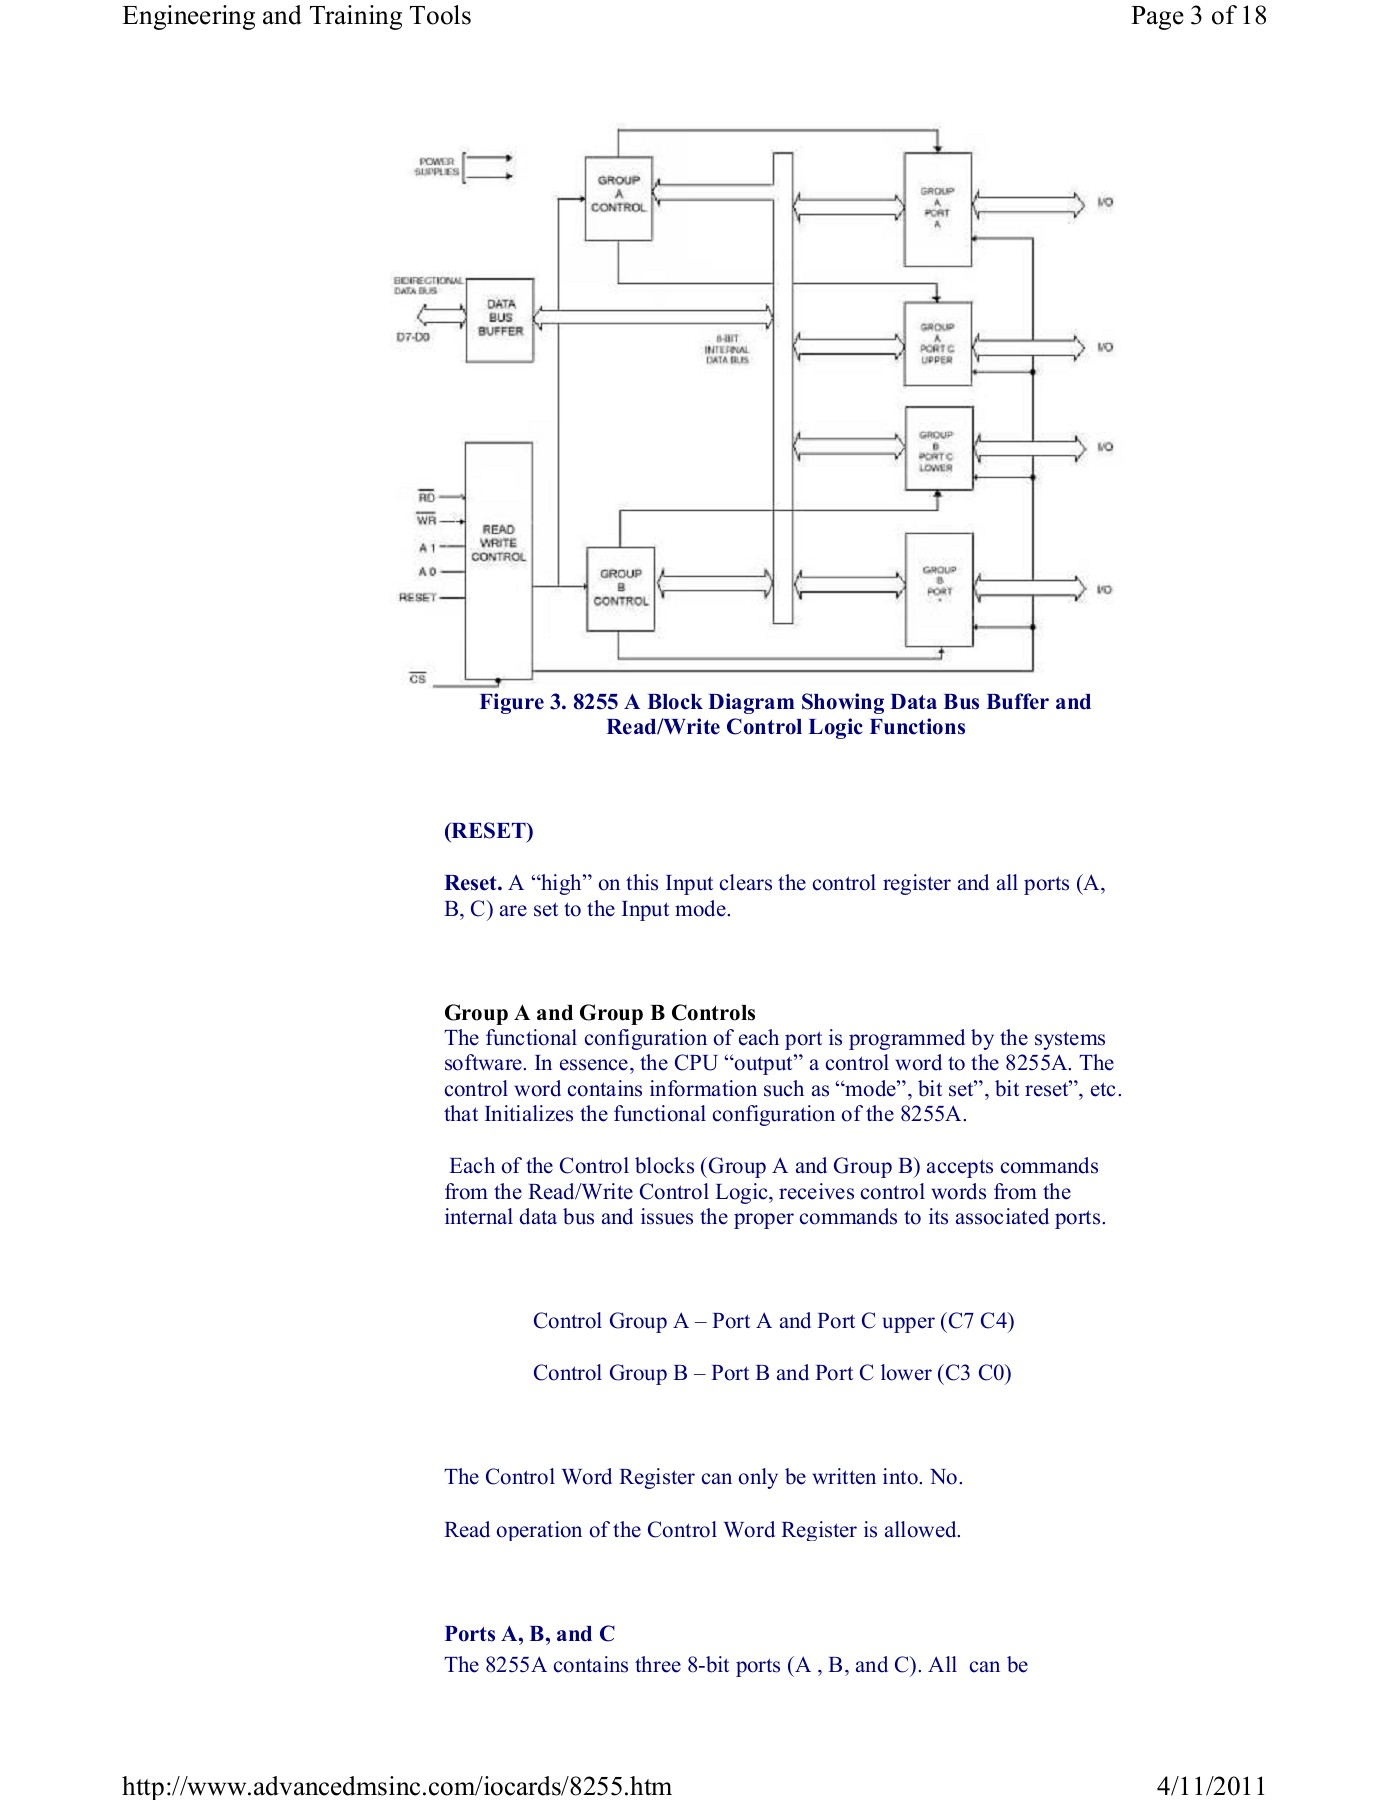 hight resolution of 8255 a block diagram showing data bus buffer and read write control logic functions reset reset a high on this input clears the control register